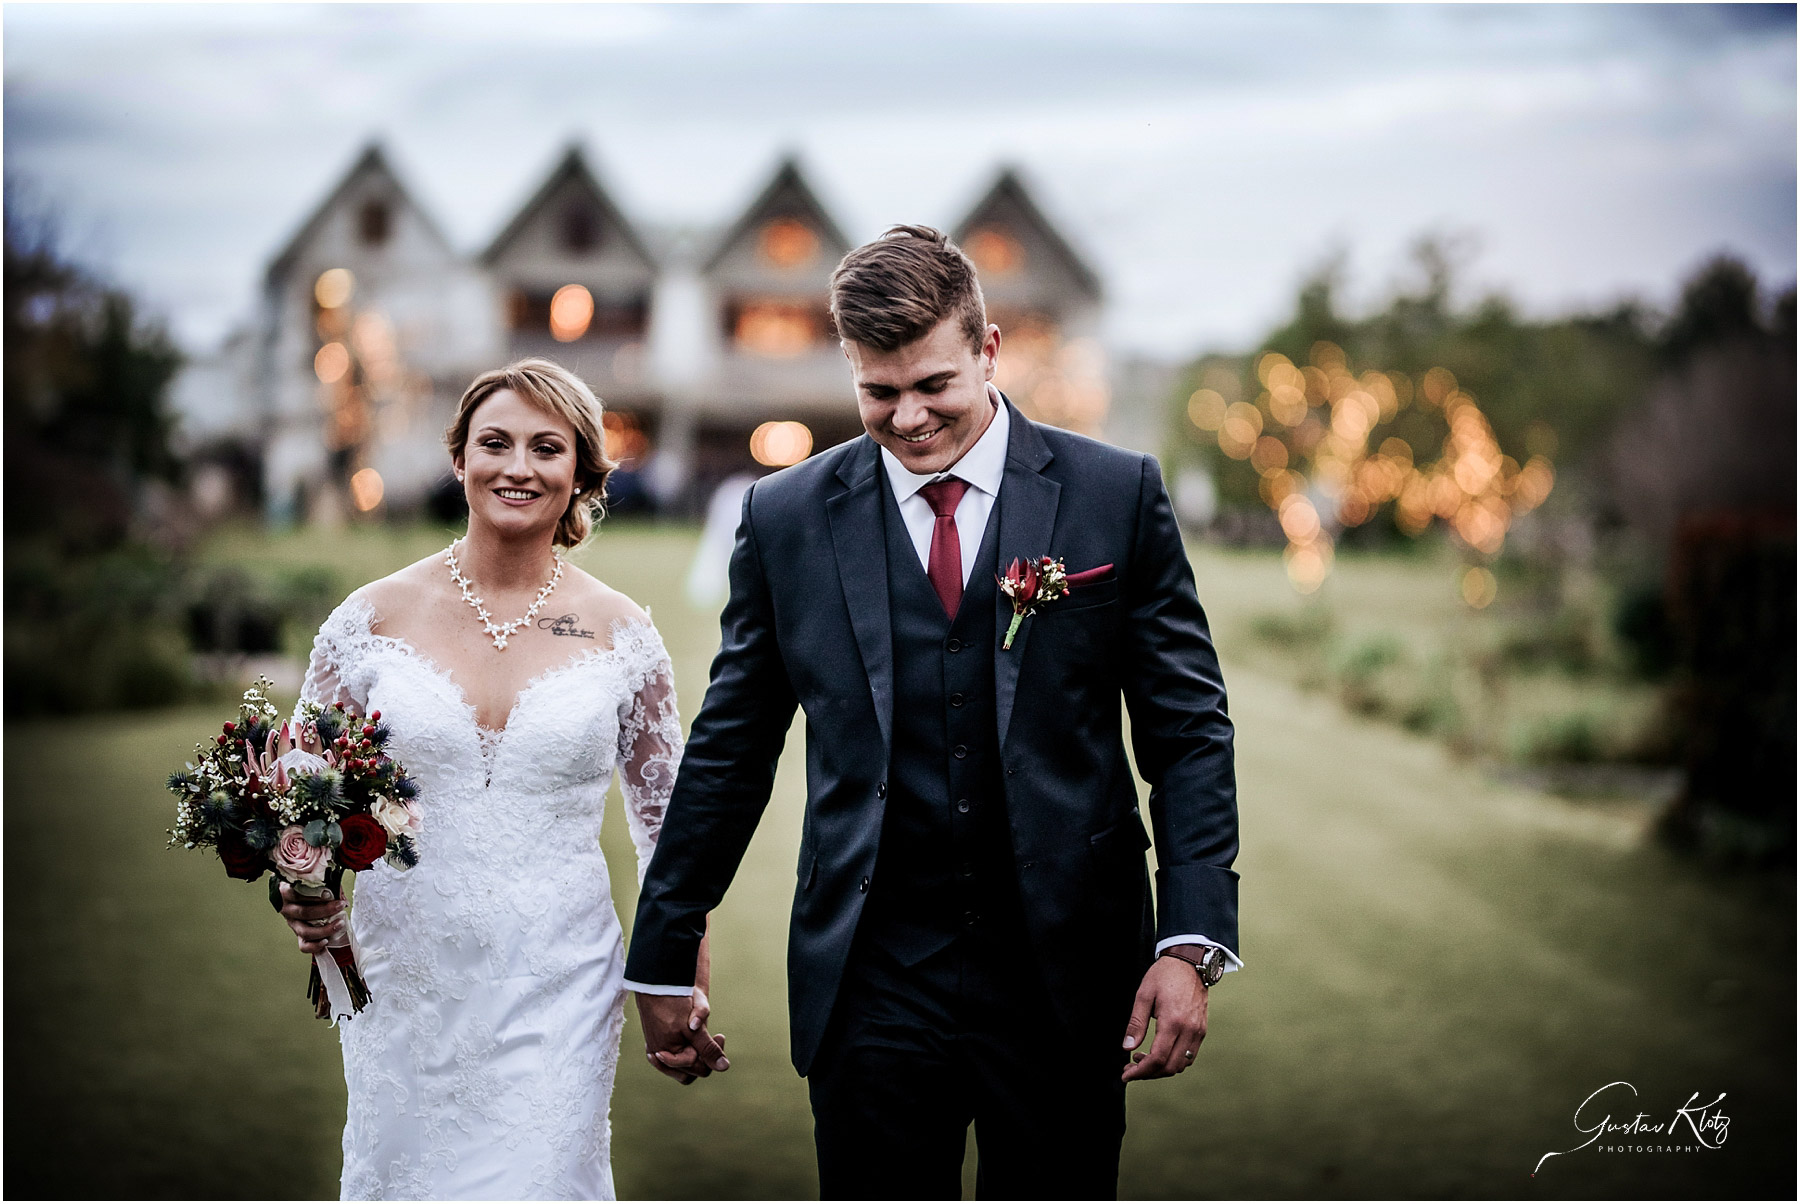 Devon & Jamie | Hudsons Wedding Estate